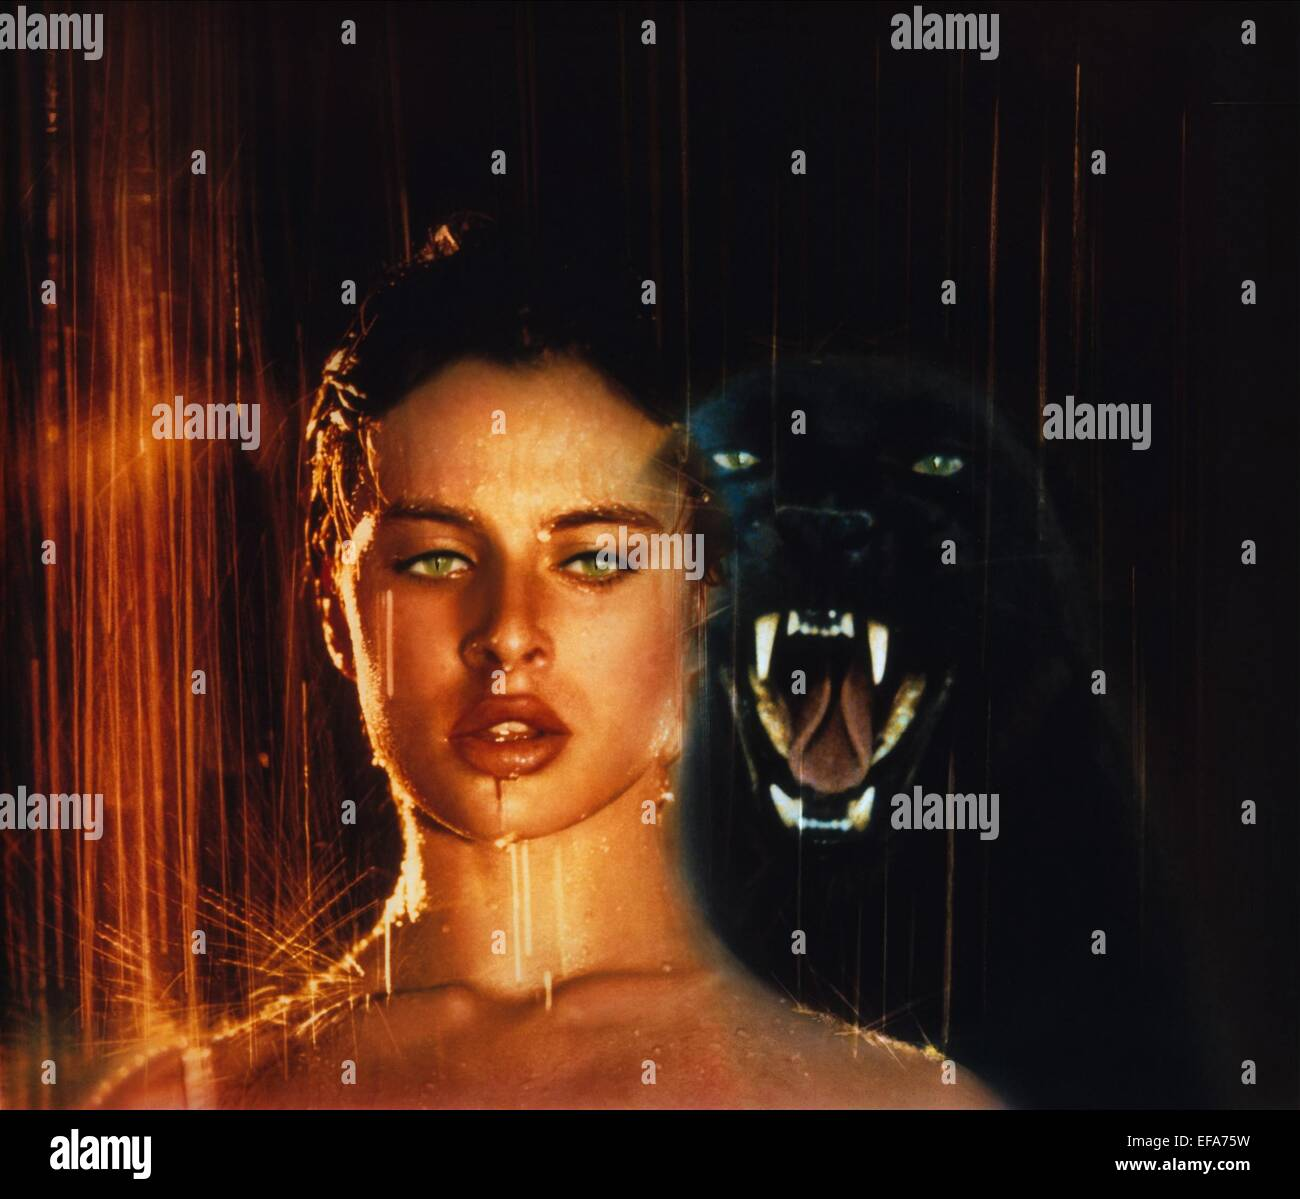 NASTASSJA KINSKI CAT PEOPLE (1982 Stock Photo - Alamy